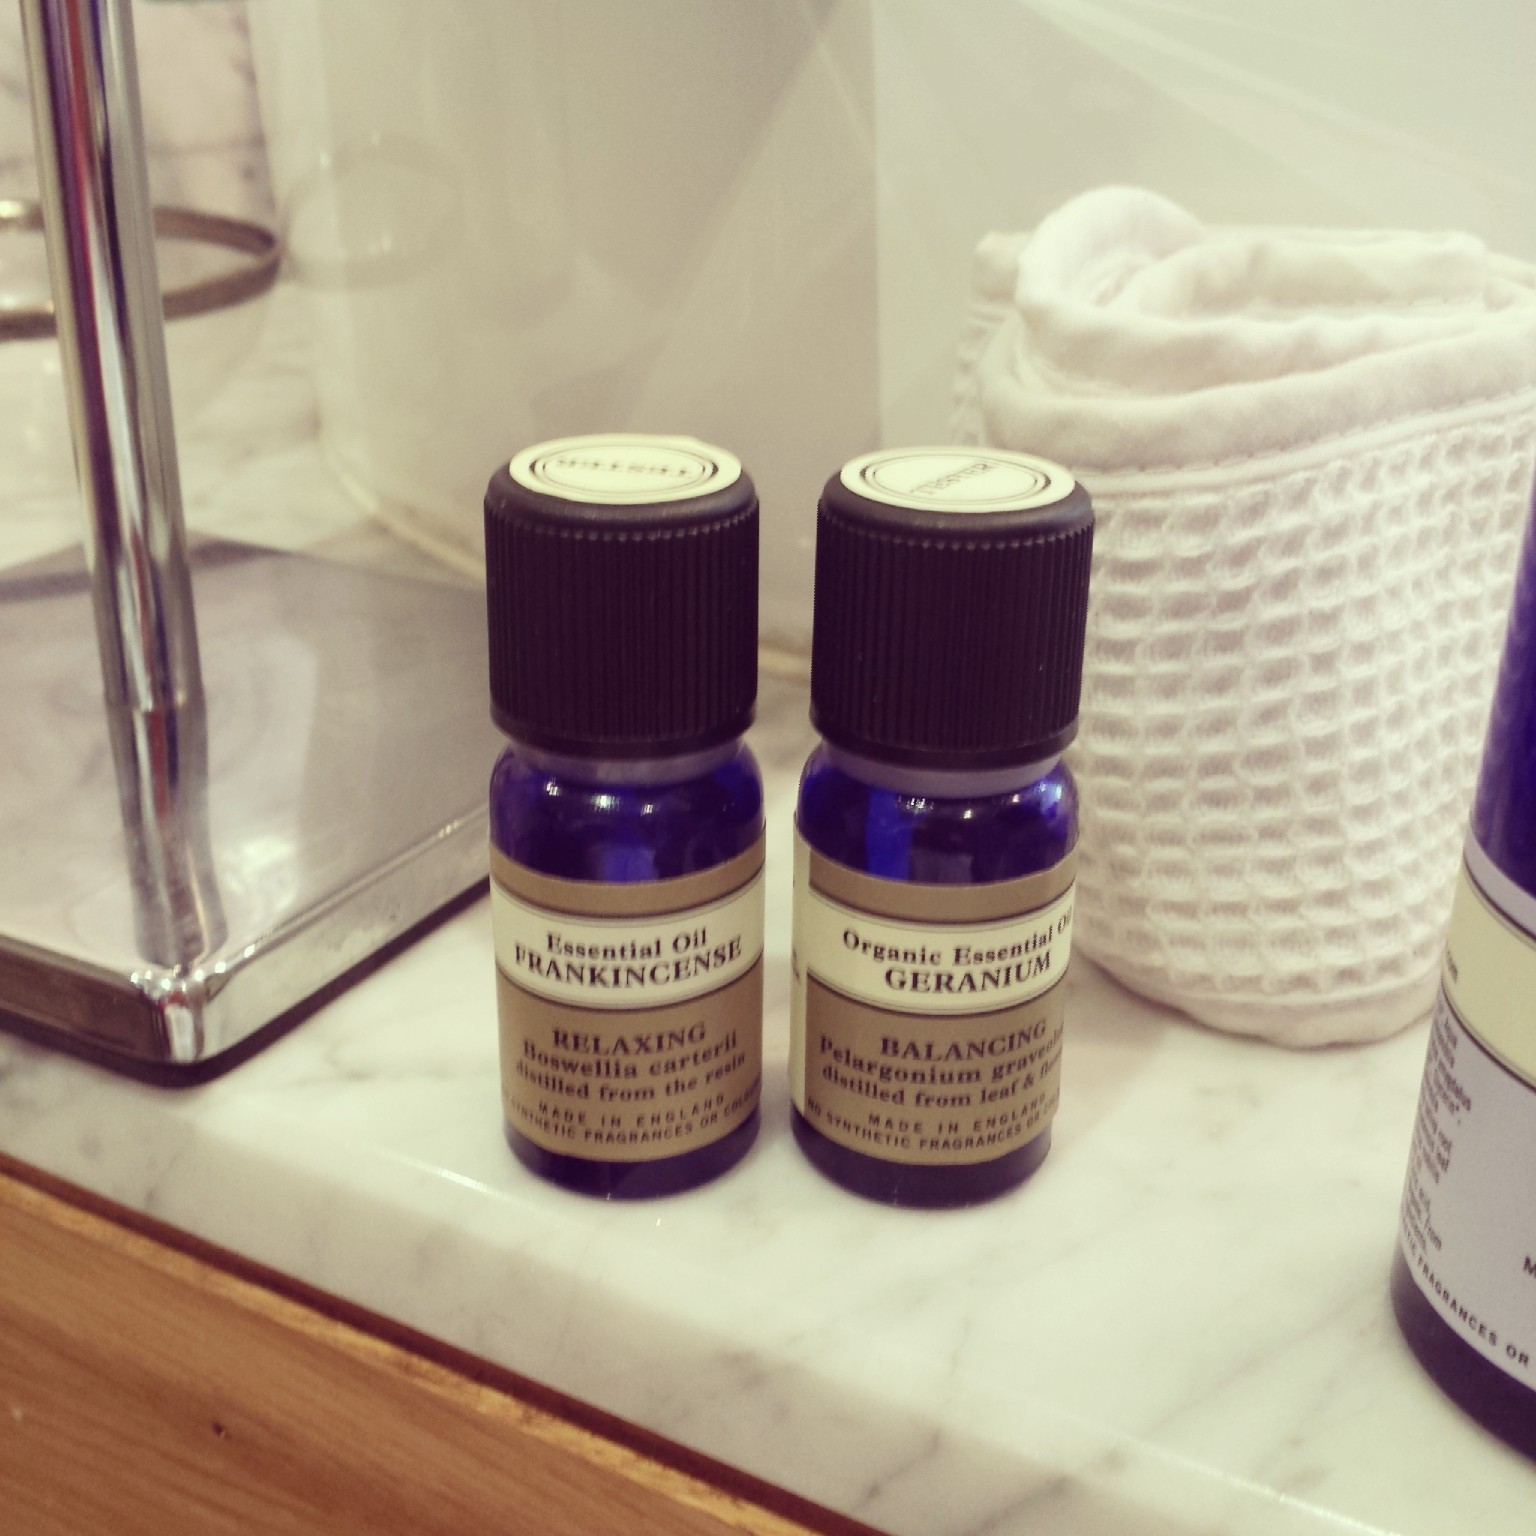 The consultant then proceeded to professionally cleanse, tone and massage my face using various Neal's Yard Remedies lotions and potions.